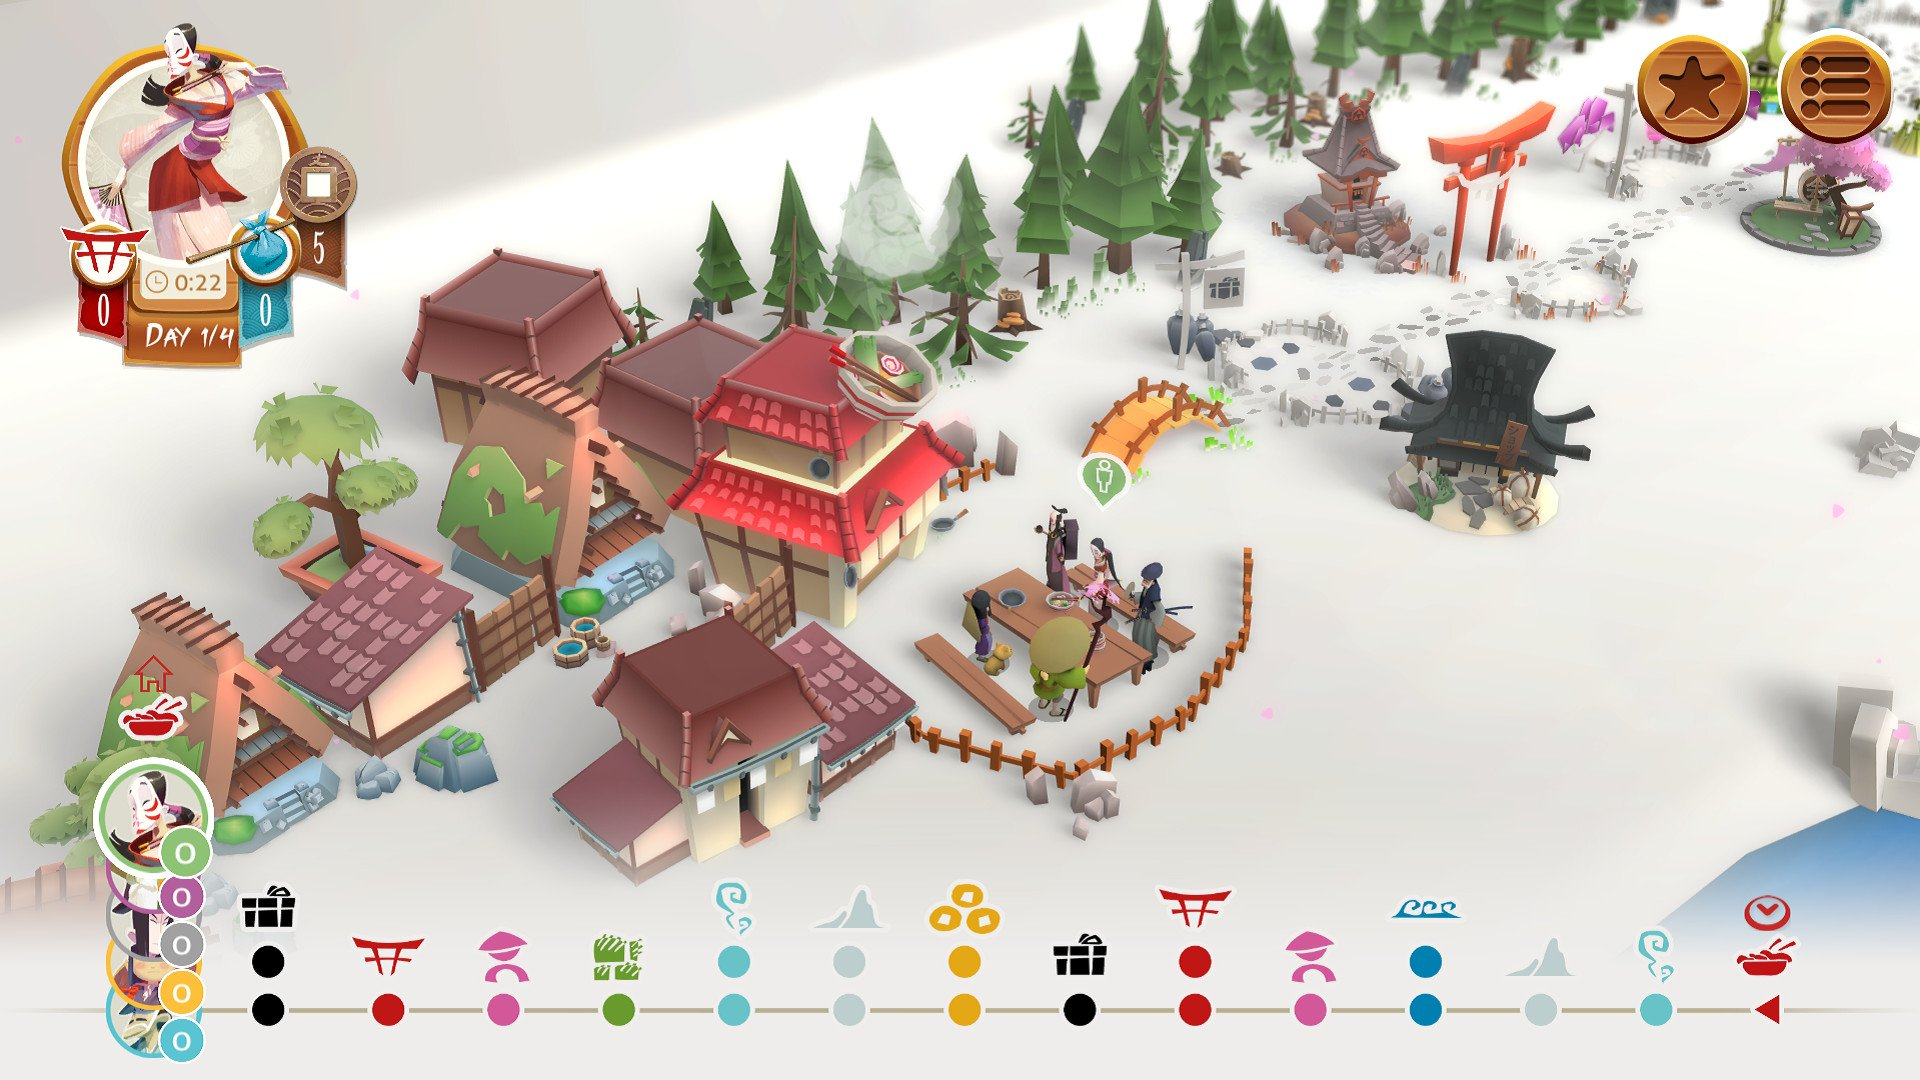 Tokaido Video